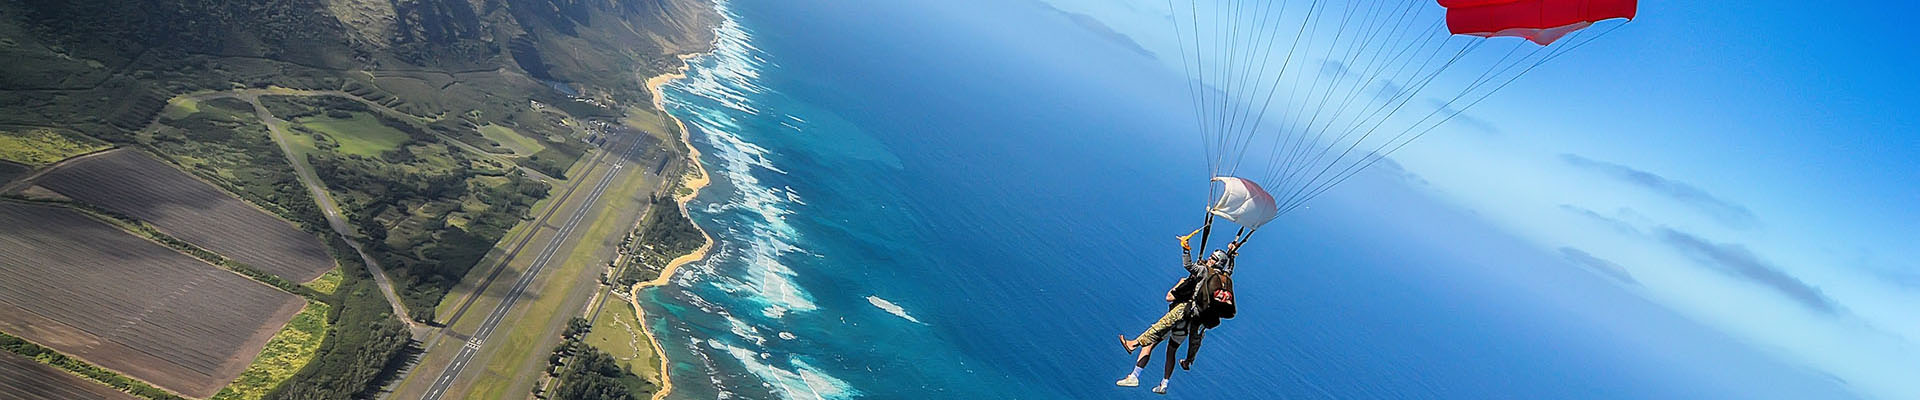 Pacific Skydiving Center Hawaii Dropzone Com